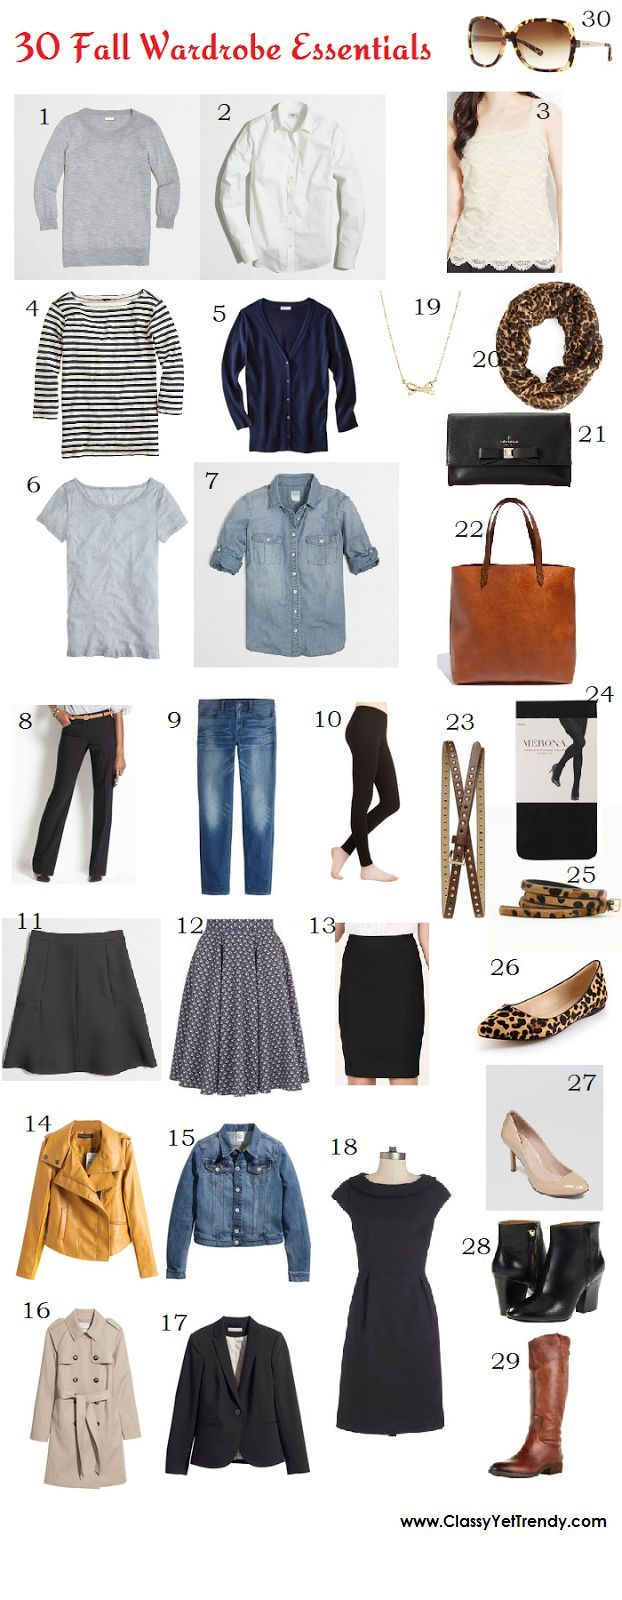 Classy Yet Trendy: Trendy Wednesday Link-Up #37: 30 Fall Wardrobe Essentials